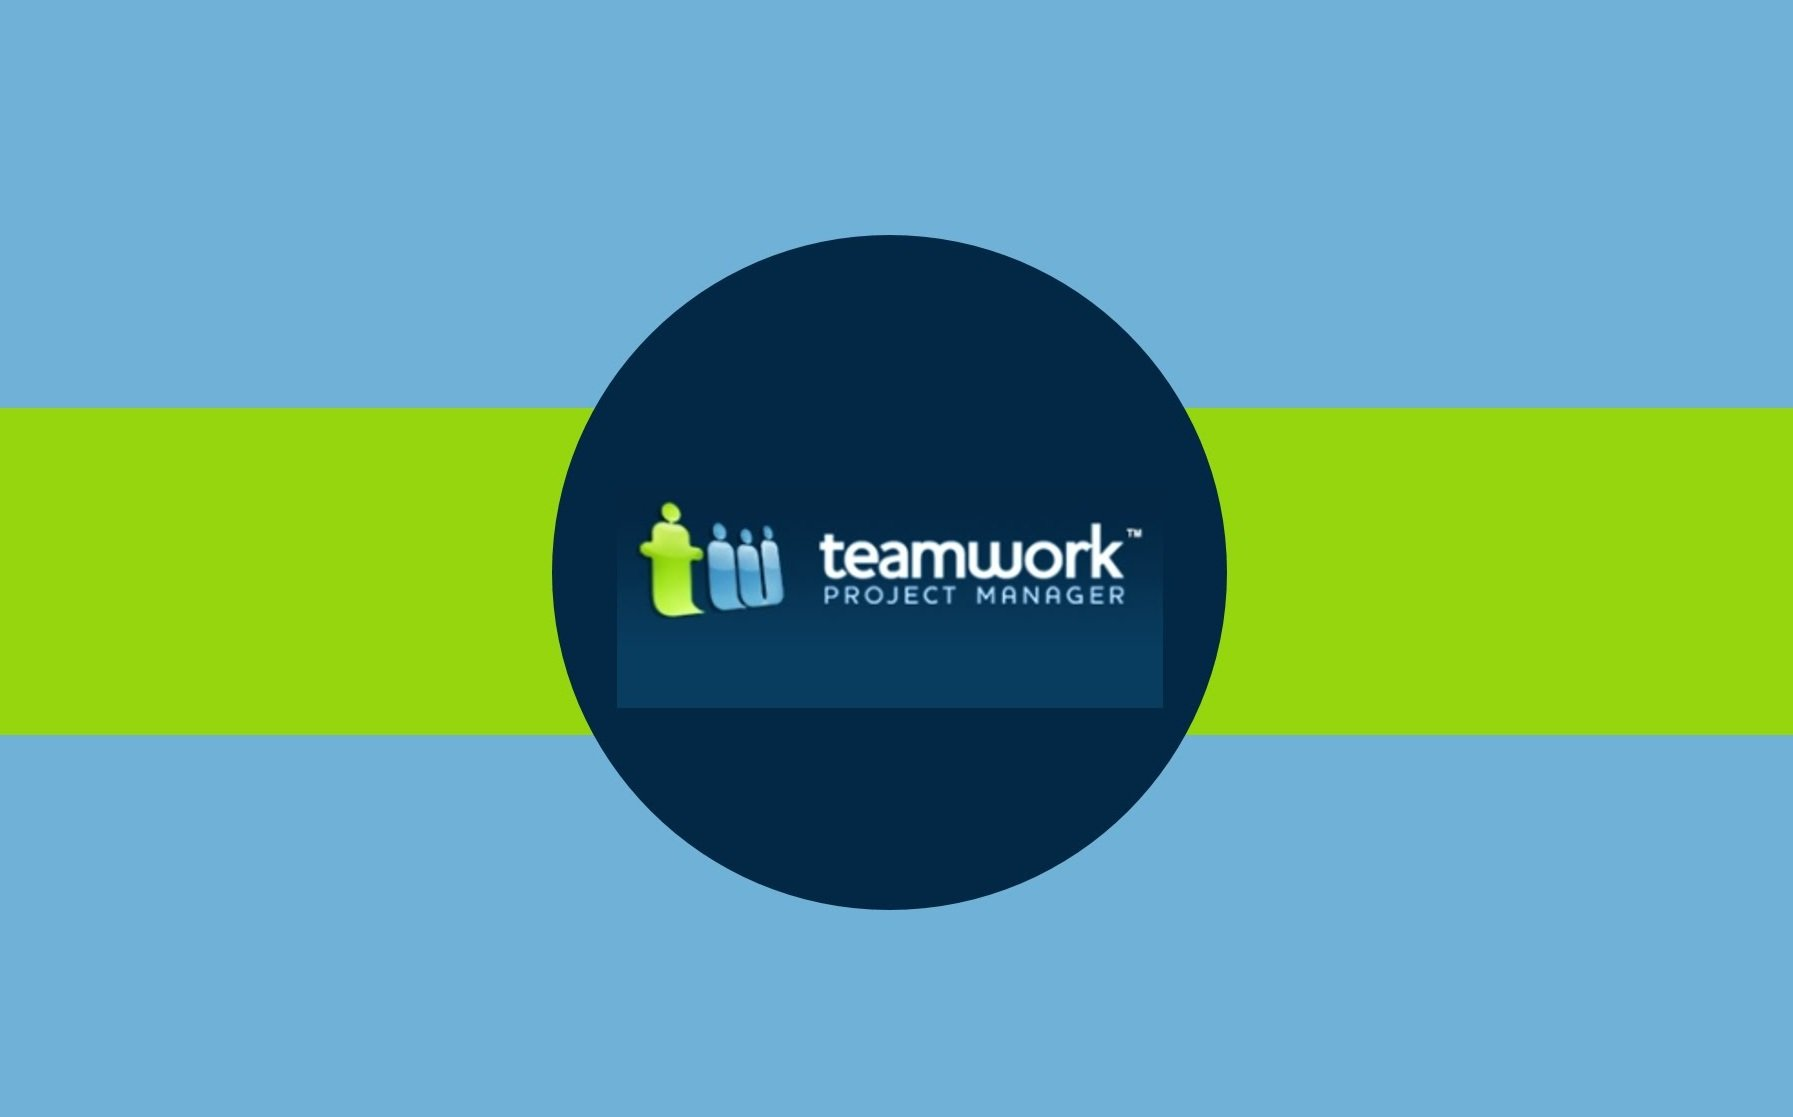 teamwork-project-management-review